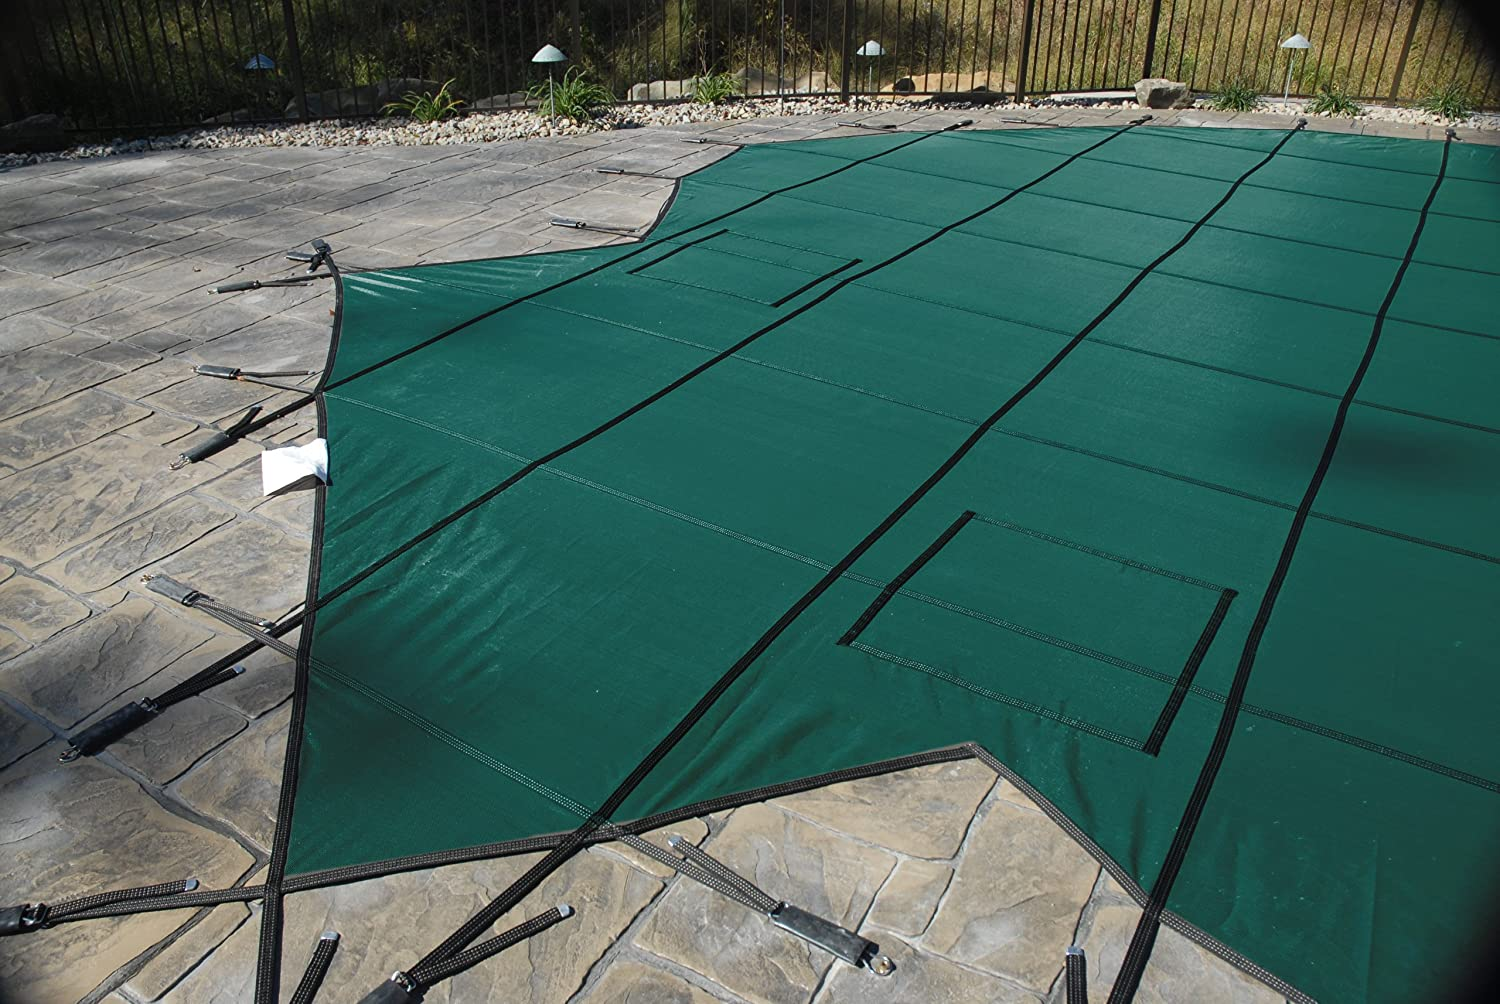 GLI ProMesh 14 FT X 28 FT Rectangular Safety Cover System, Green